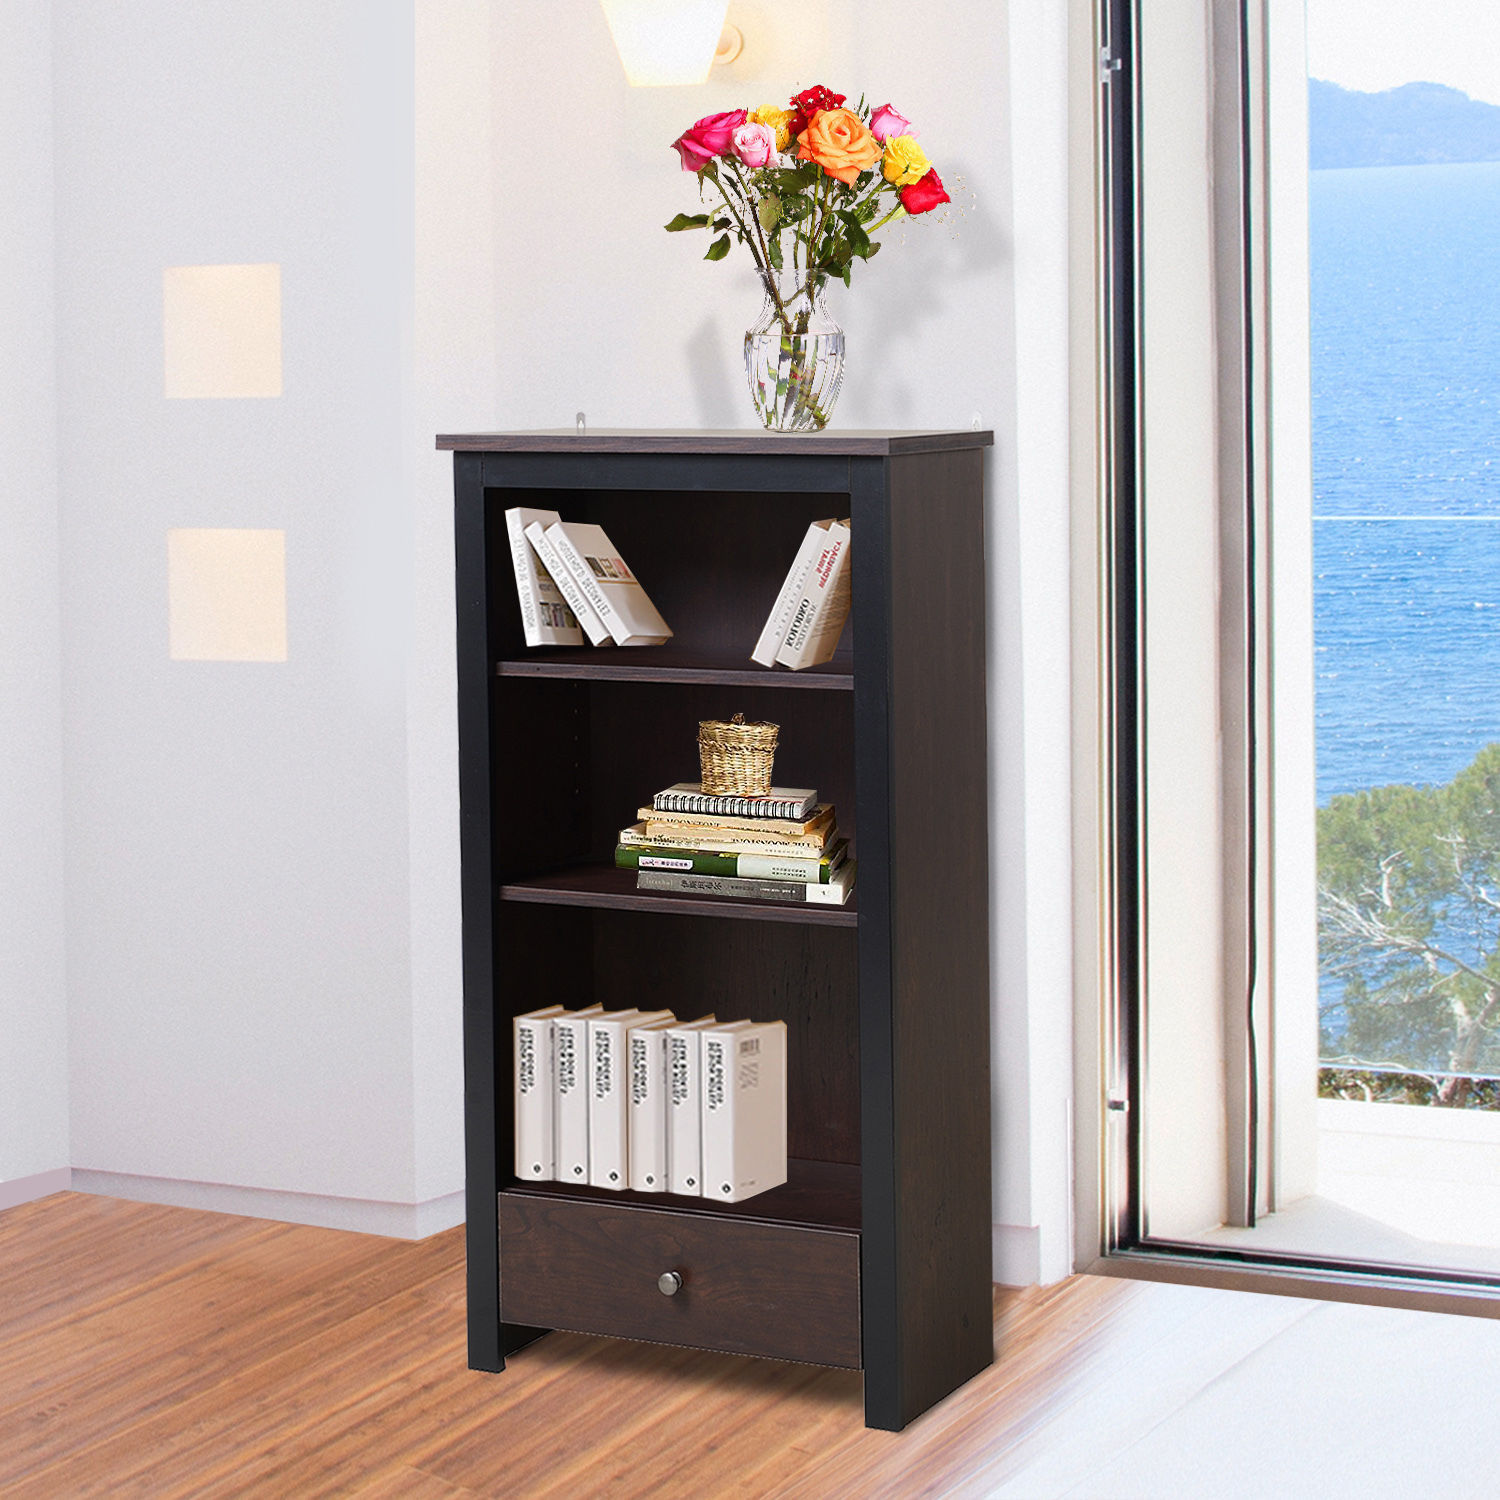 "GHP 22.6""x11.6""x42.3"" 3-Shelf Particle Board Bookshelf with Slide-Out Bottom Drawer"